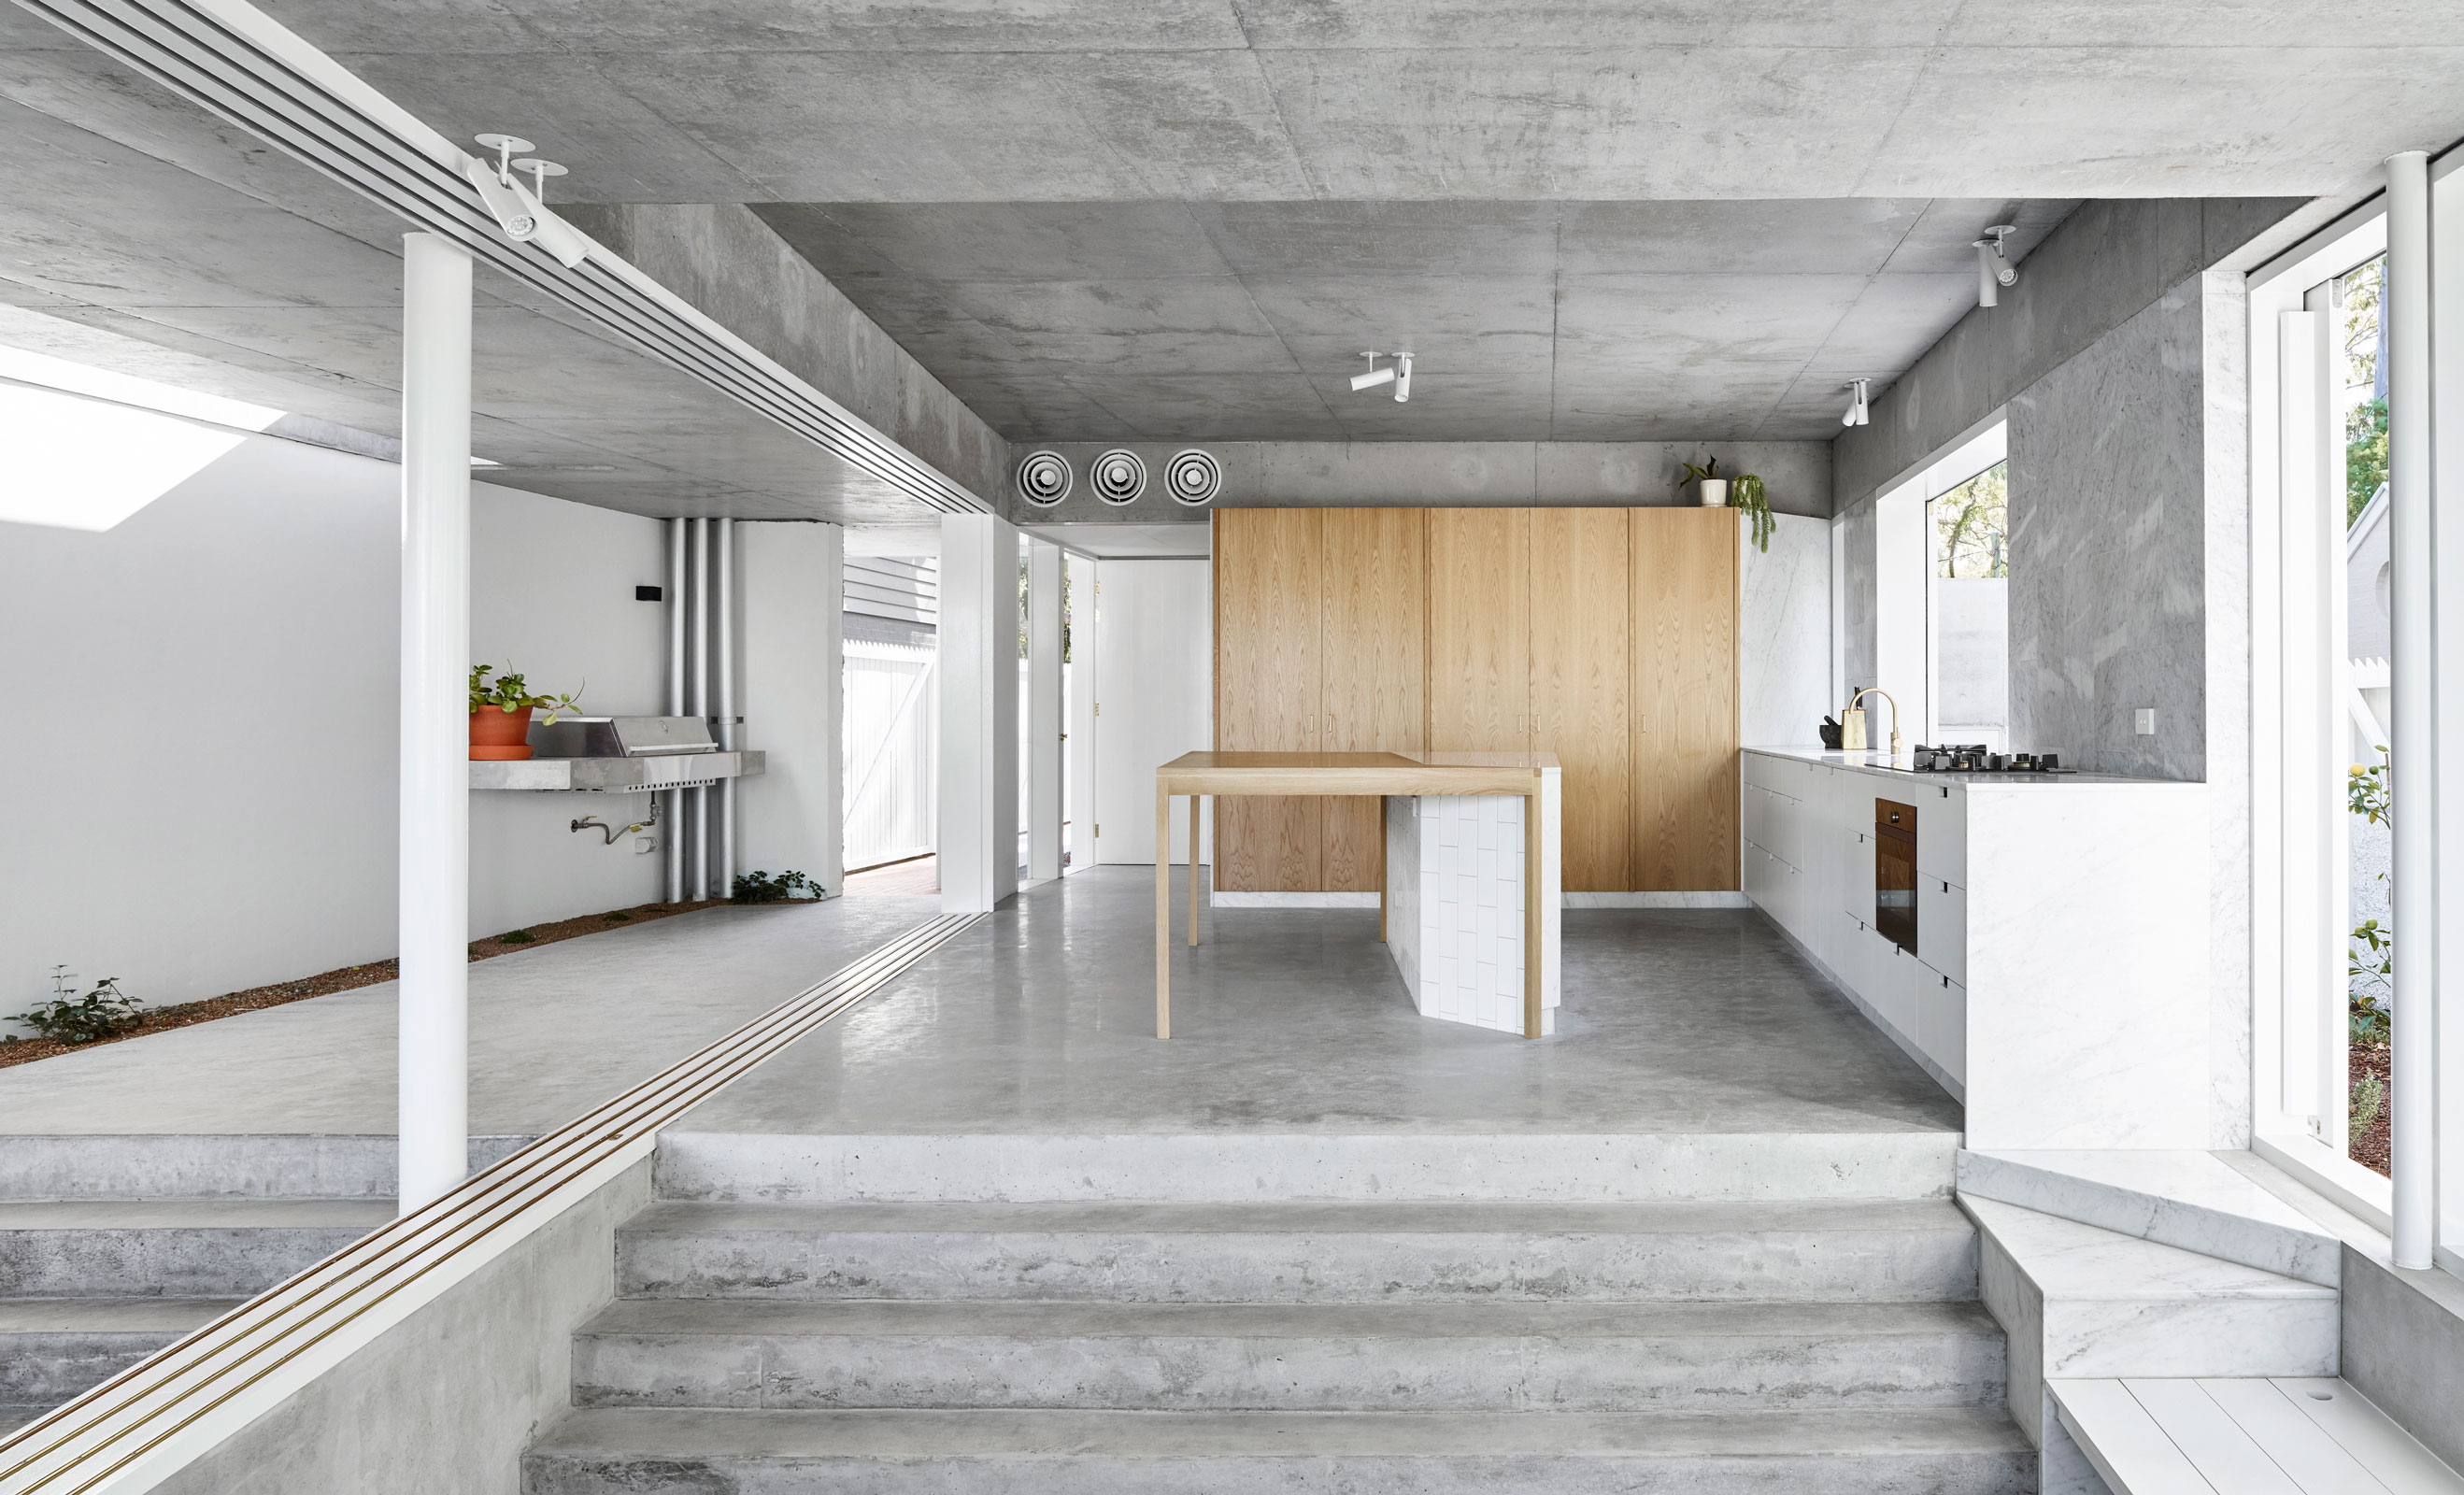 Indooroopilly House Is Owen Architecture And Lineburg Wang's 2019 Qld Architecture Awards Entry